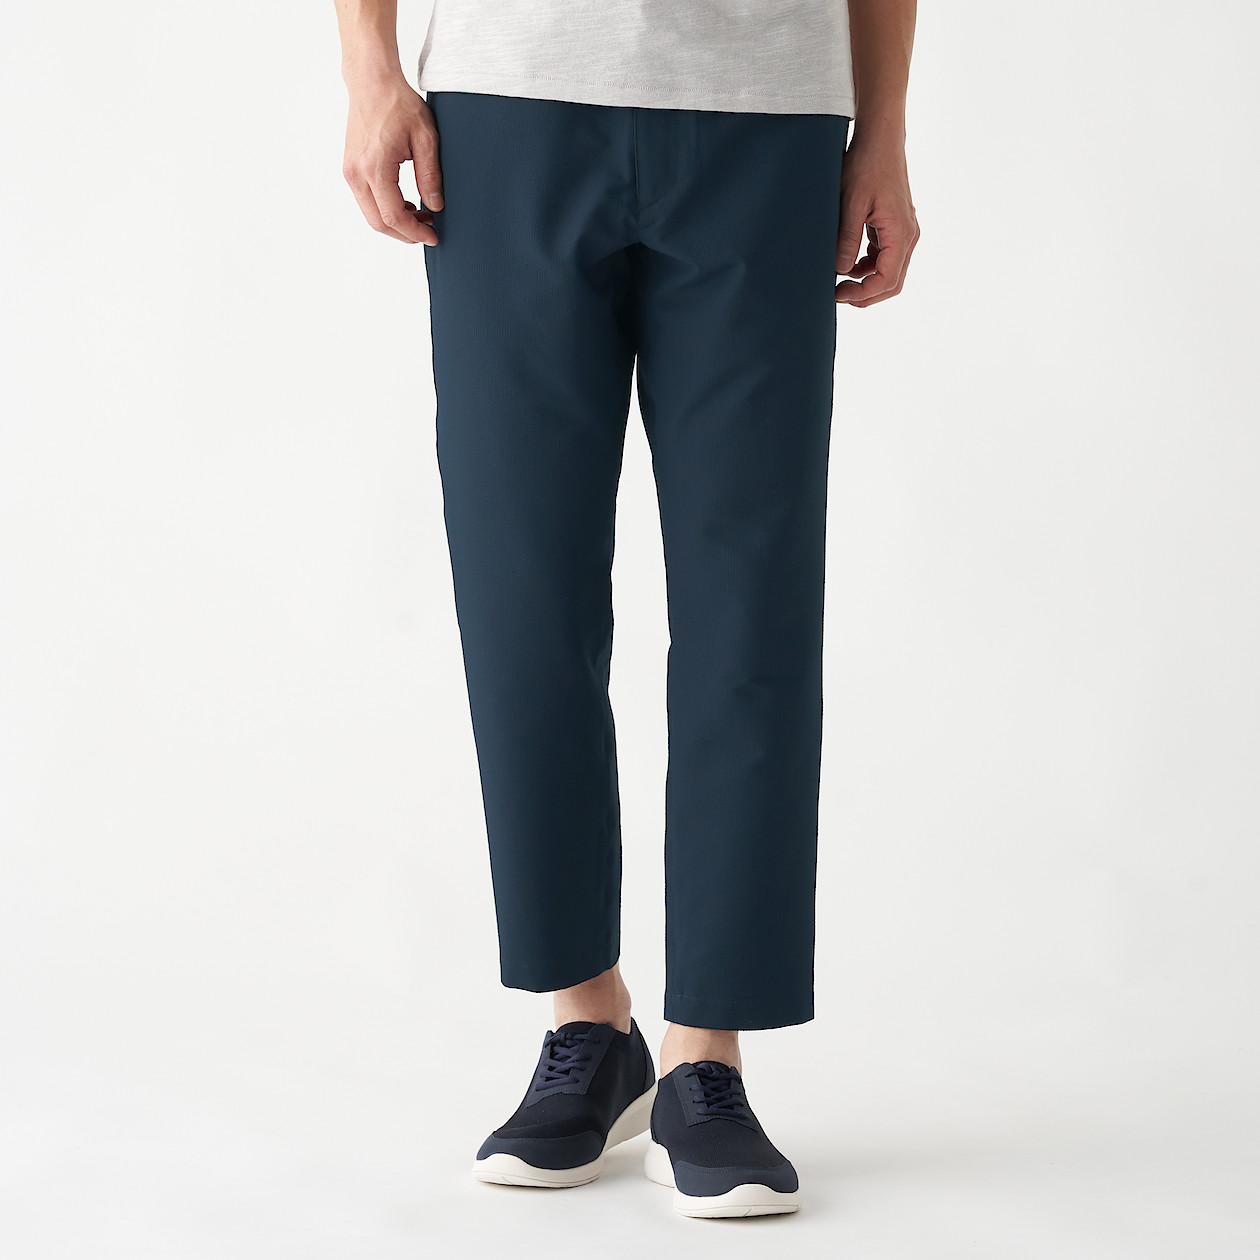 Men's Stretch Sucker Ankle Length Trousers